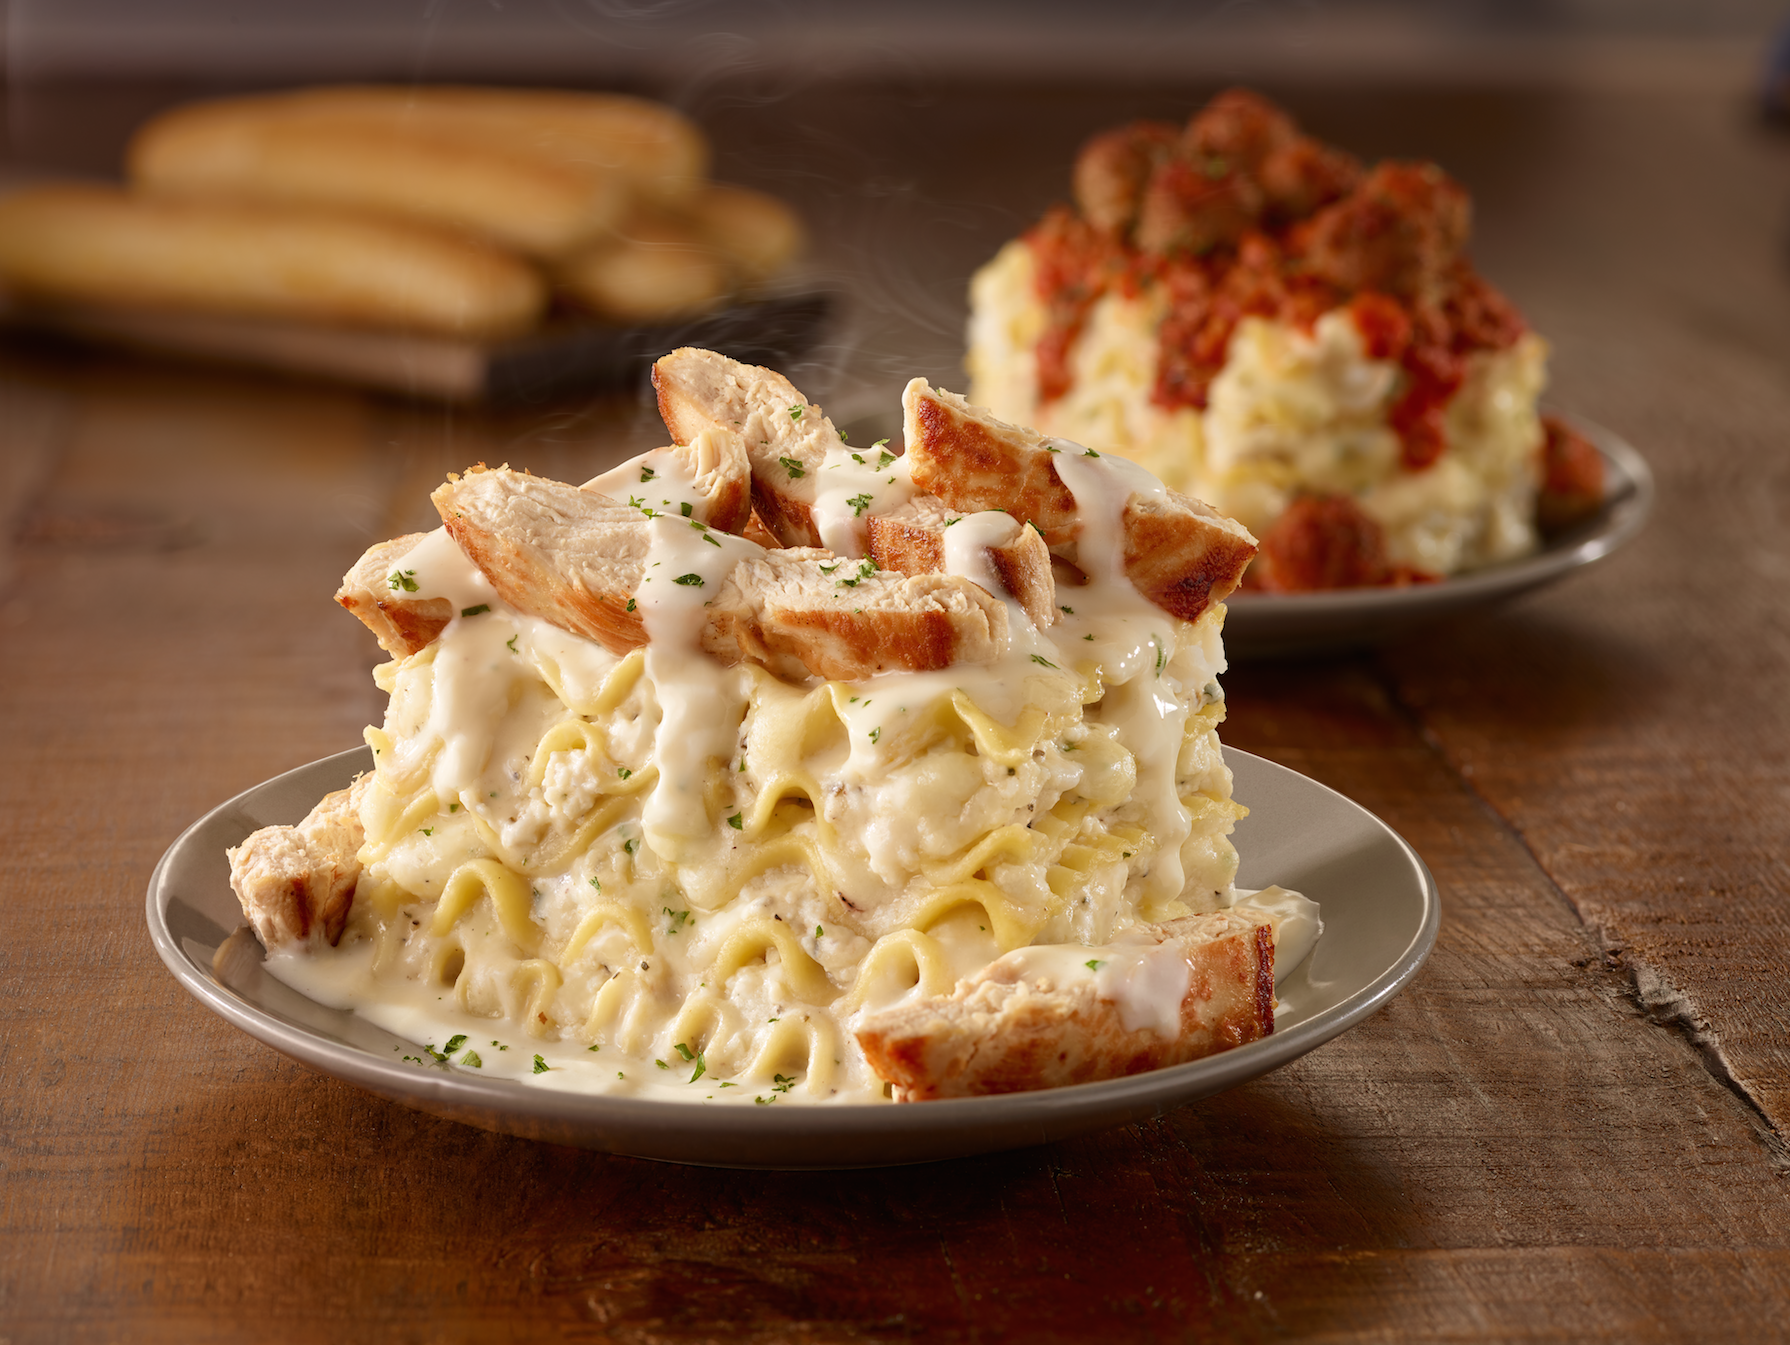 Olive Garden\'s Create-Your-Own Lasagna Sends the Internet Into a Tizzy